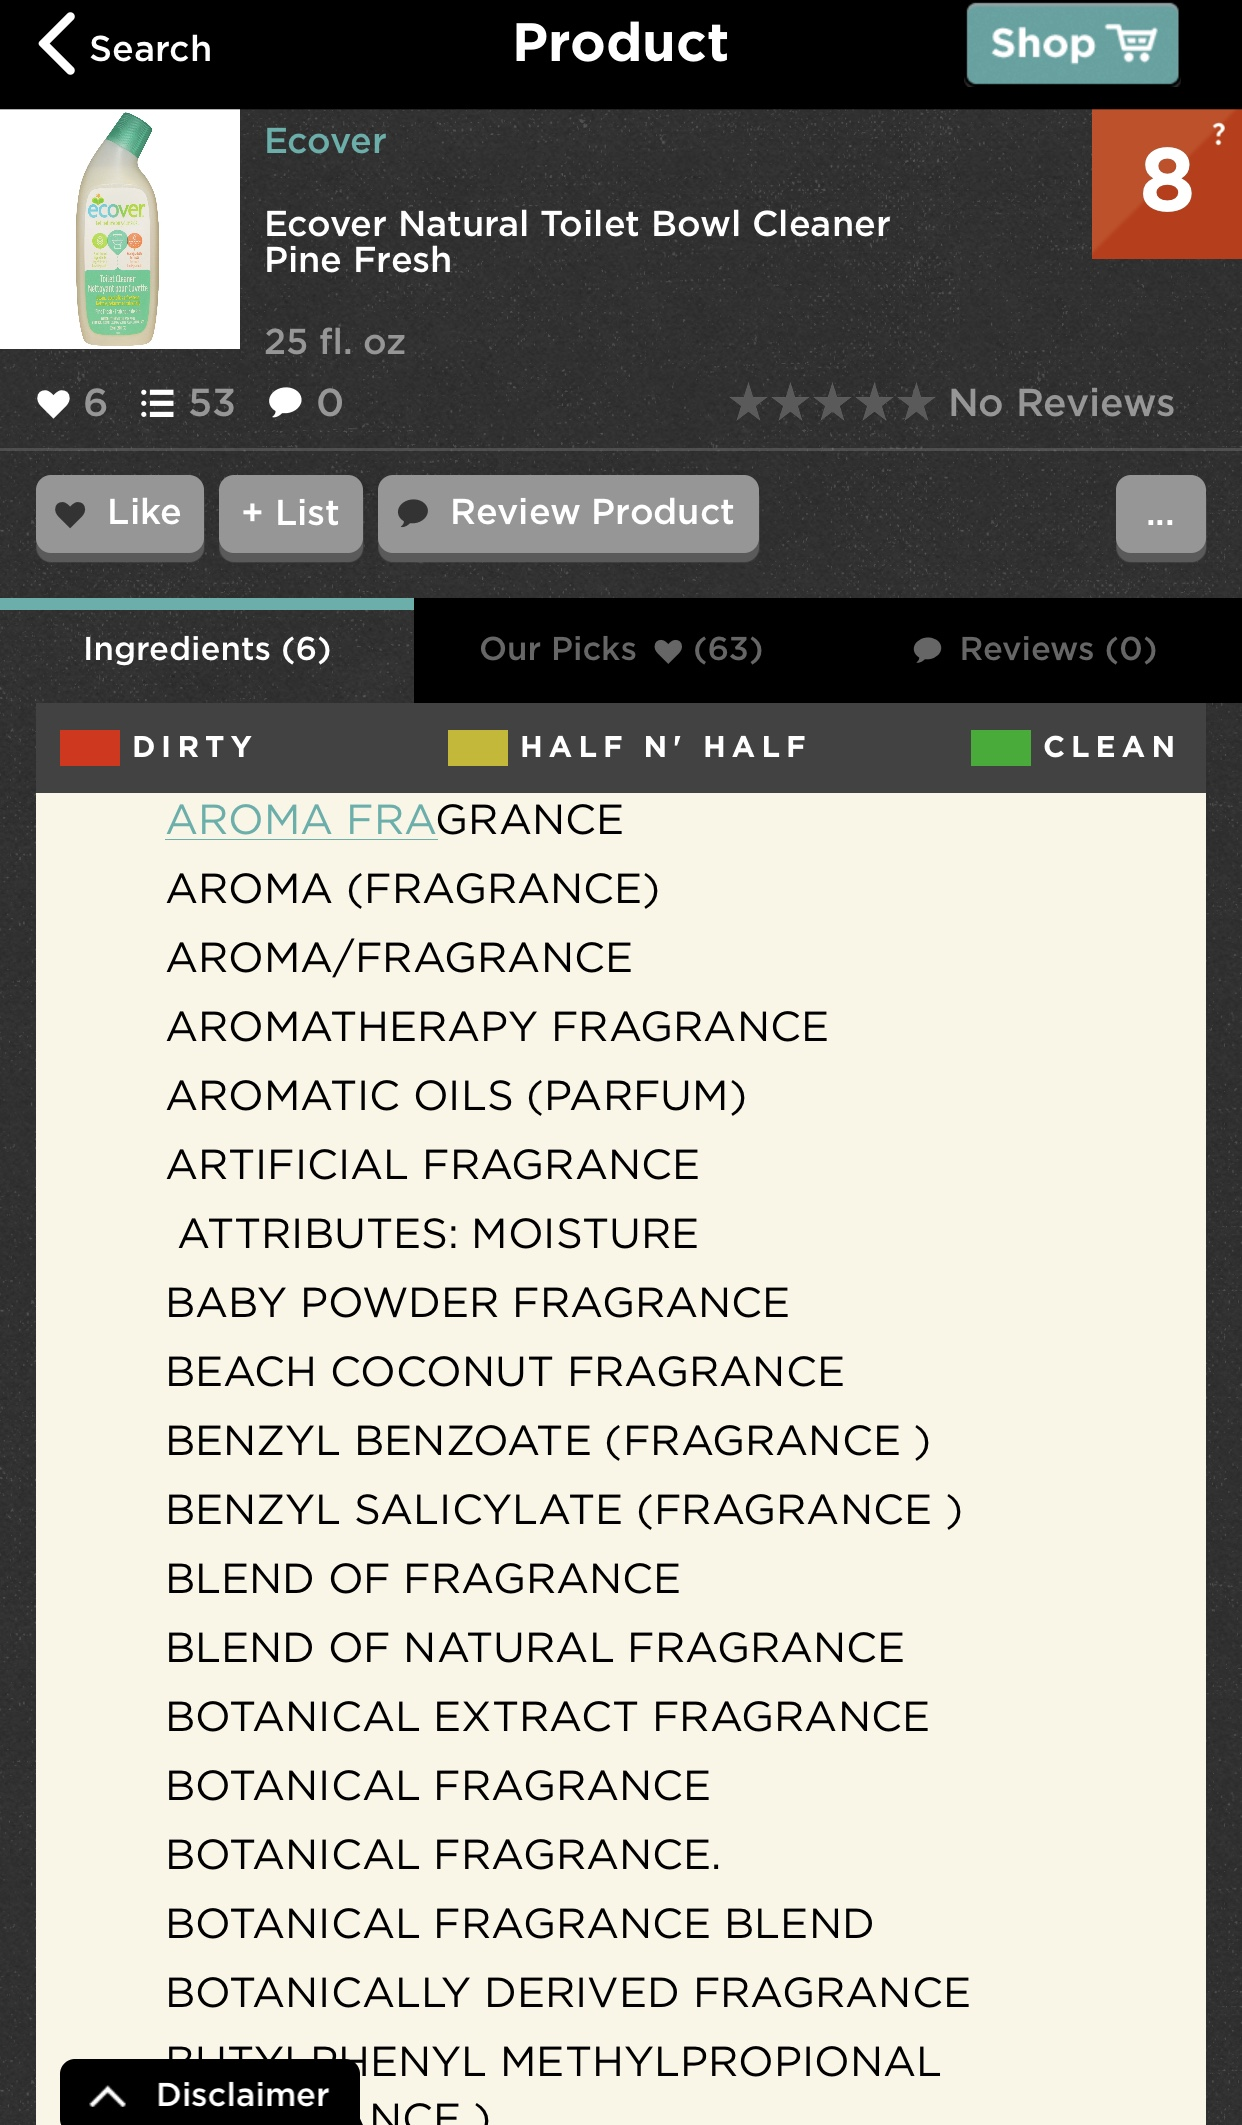 This is just SOME of the artificial fragrances contained in this product!